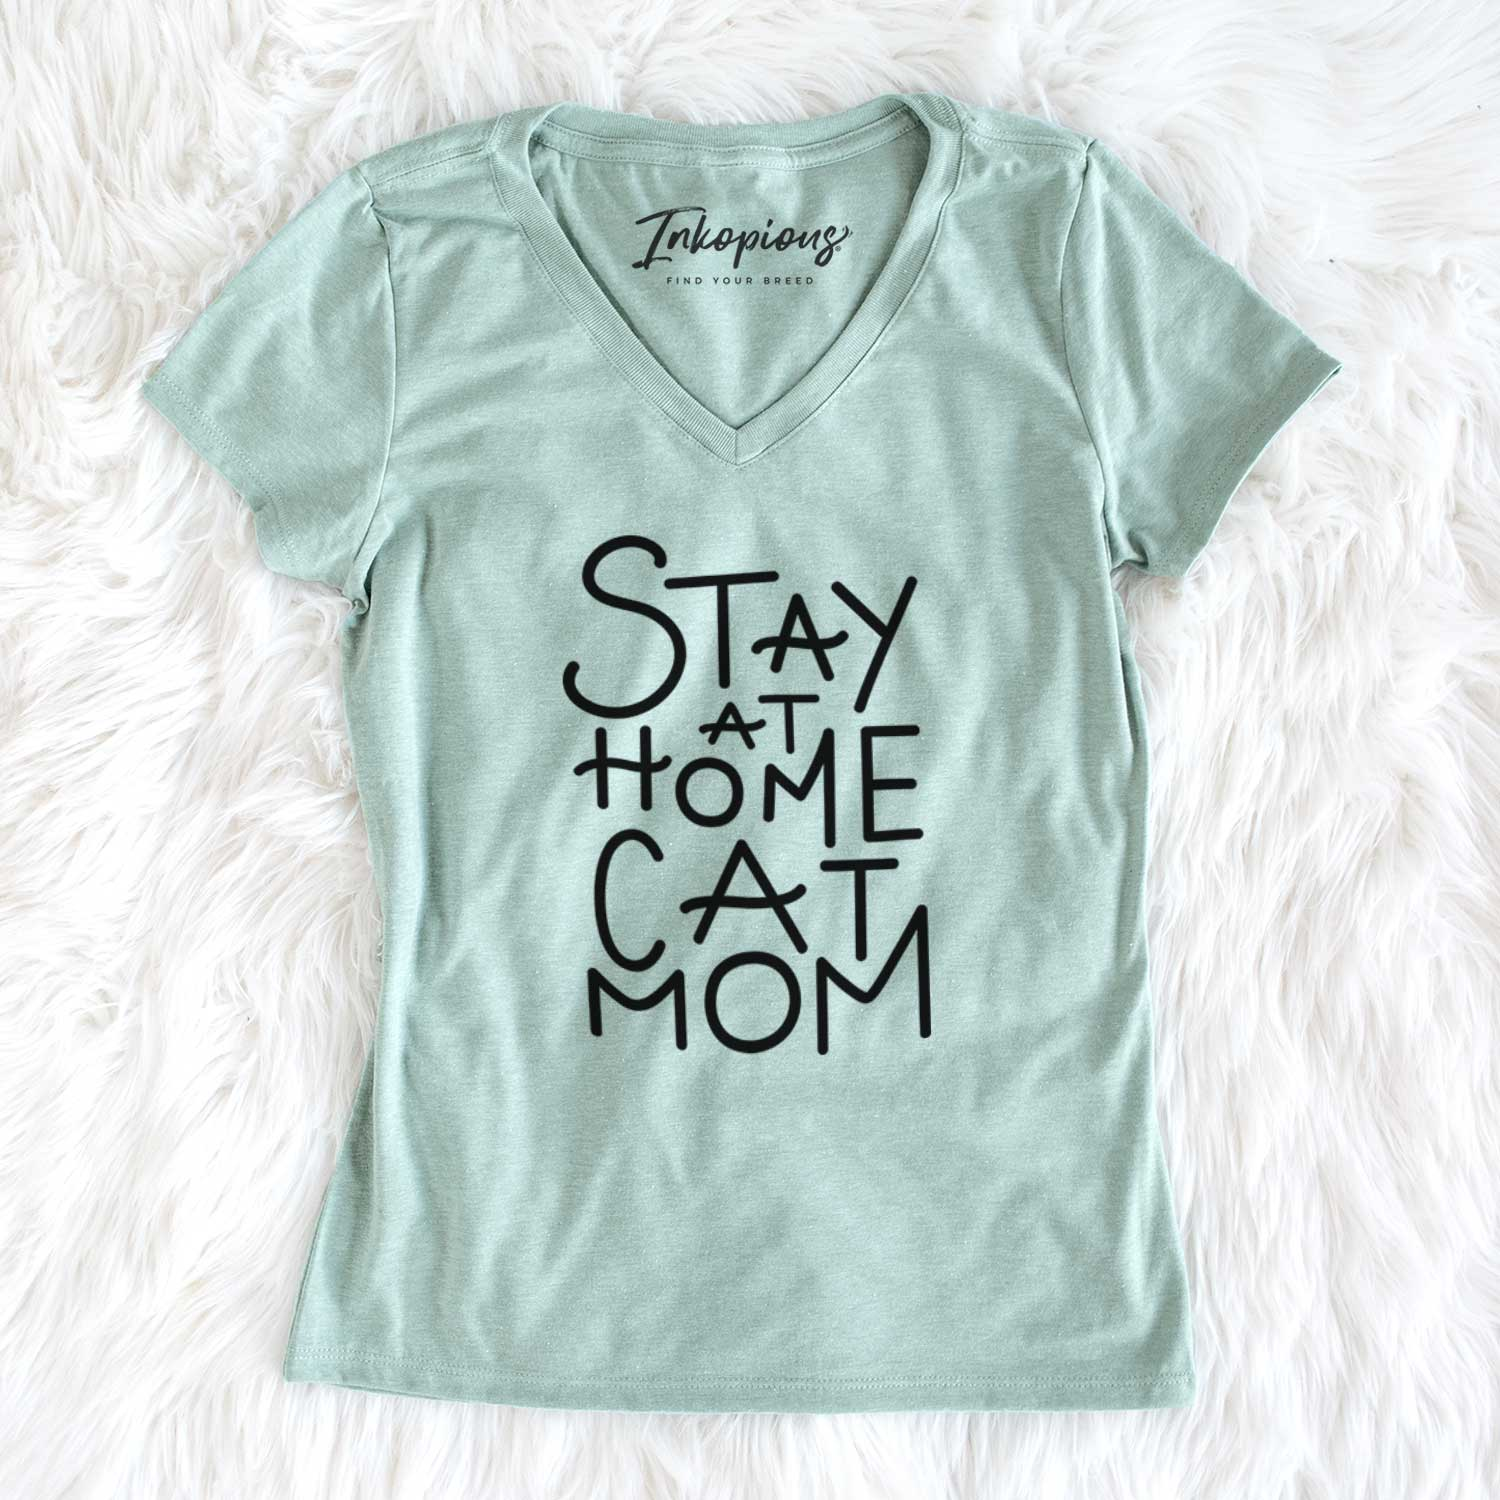 Stay at Home Cat Mom  - Women's Perfect V-neck Shirt